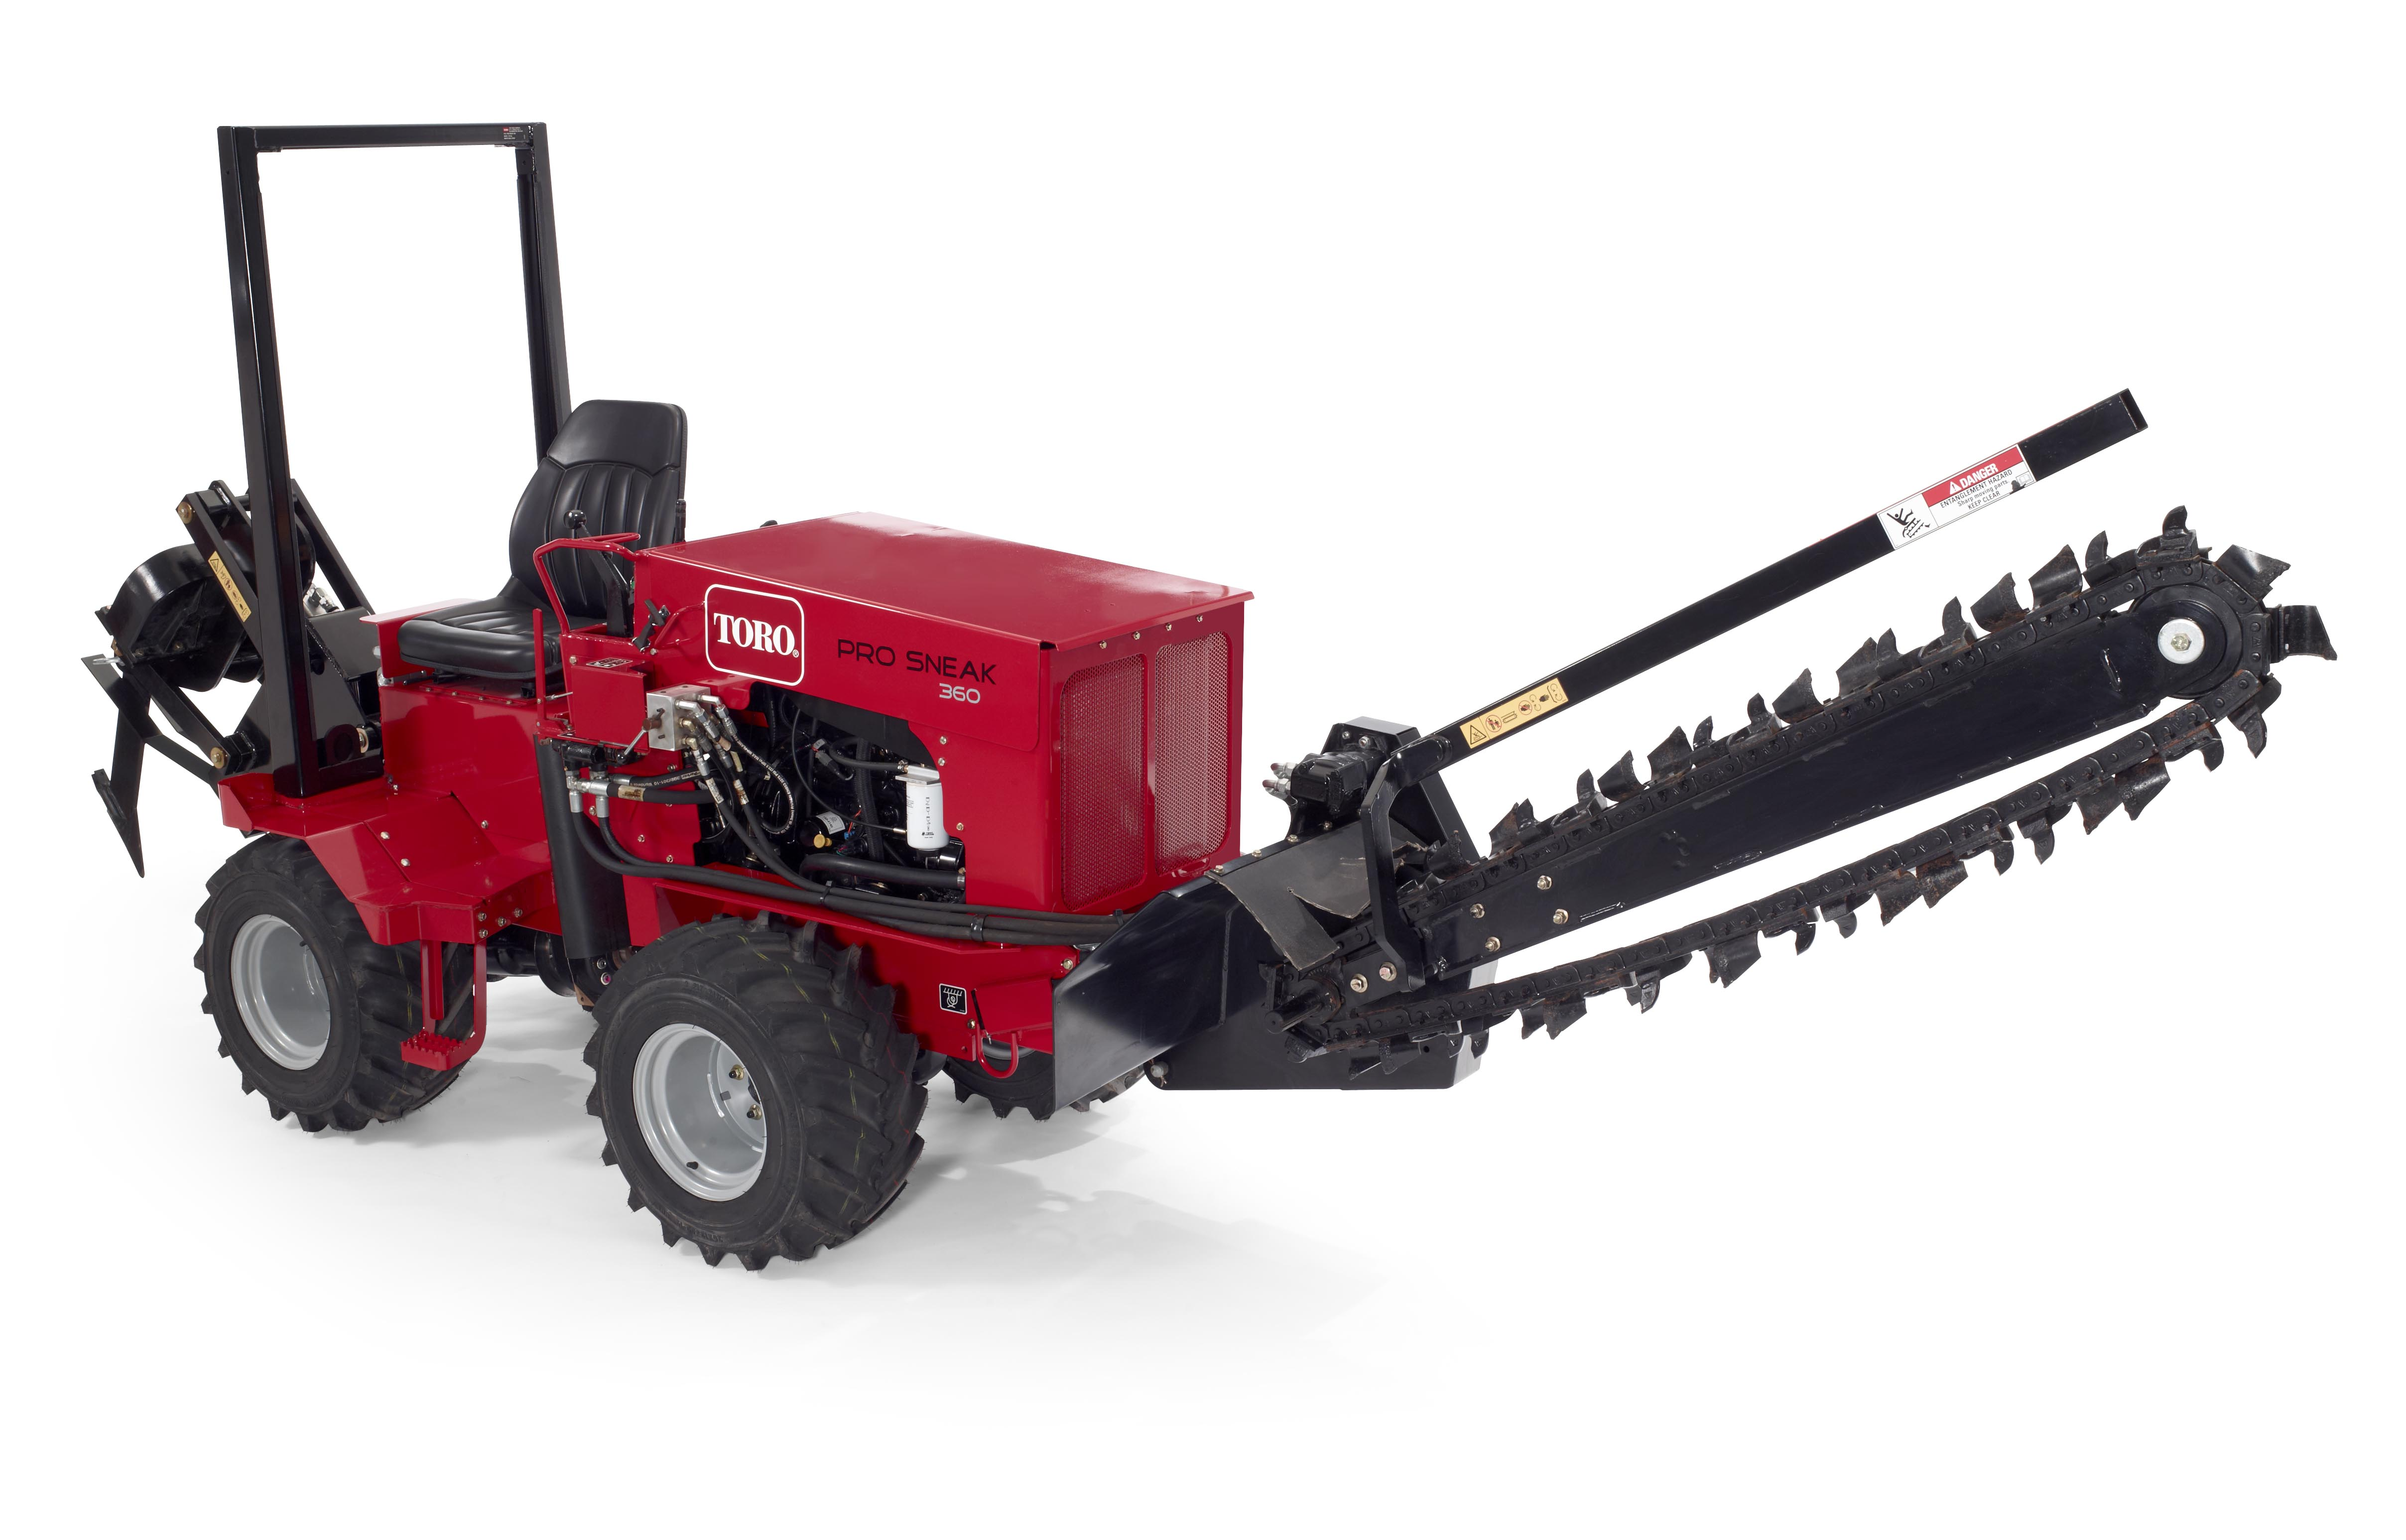 Strong Demand Tipped for New Toro Pro Sneak™ 360